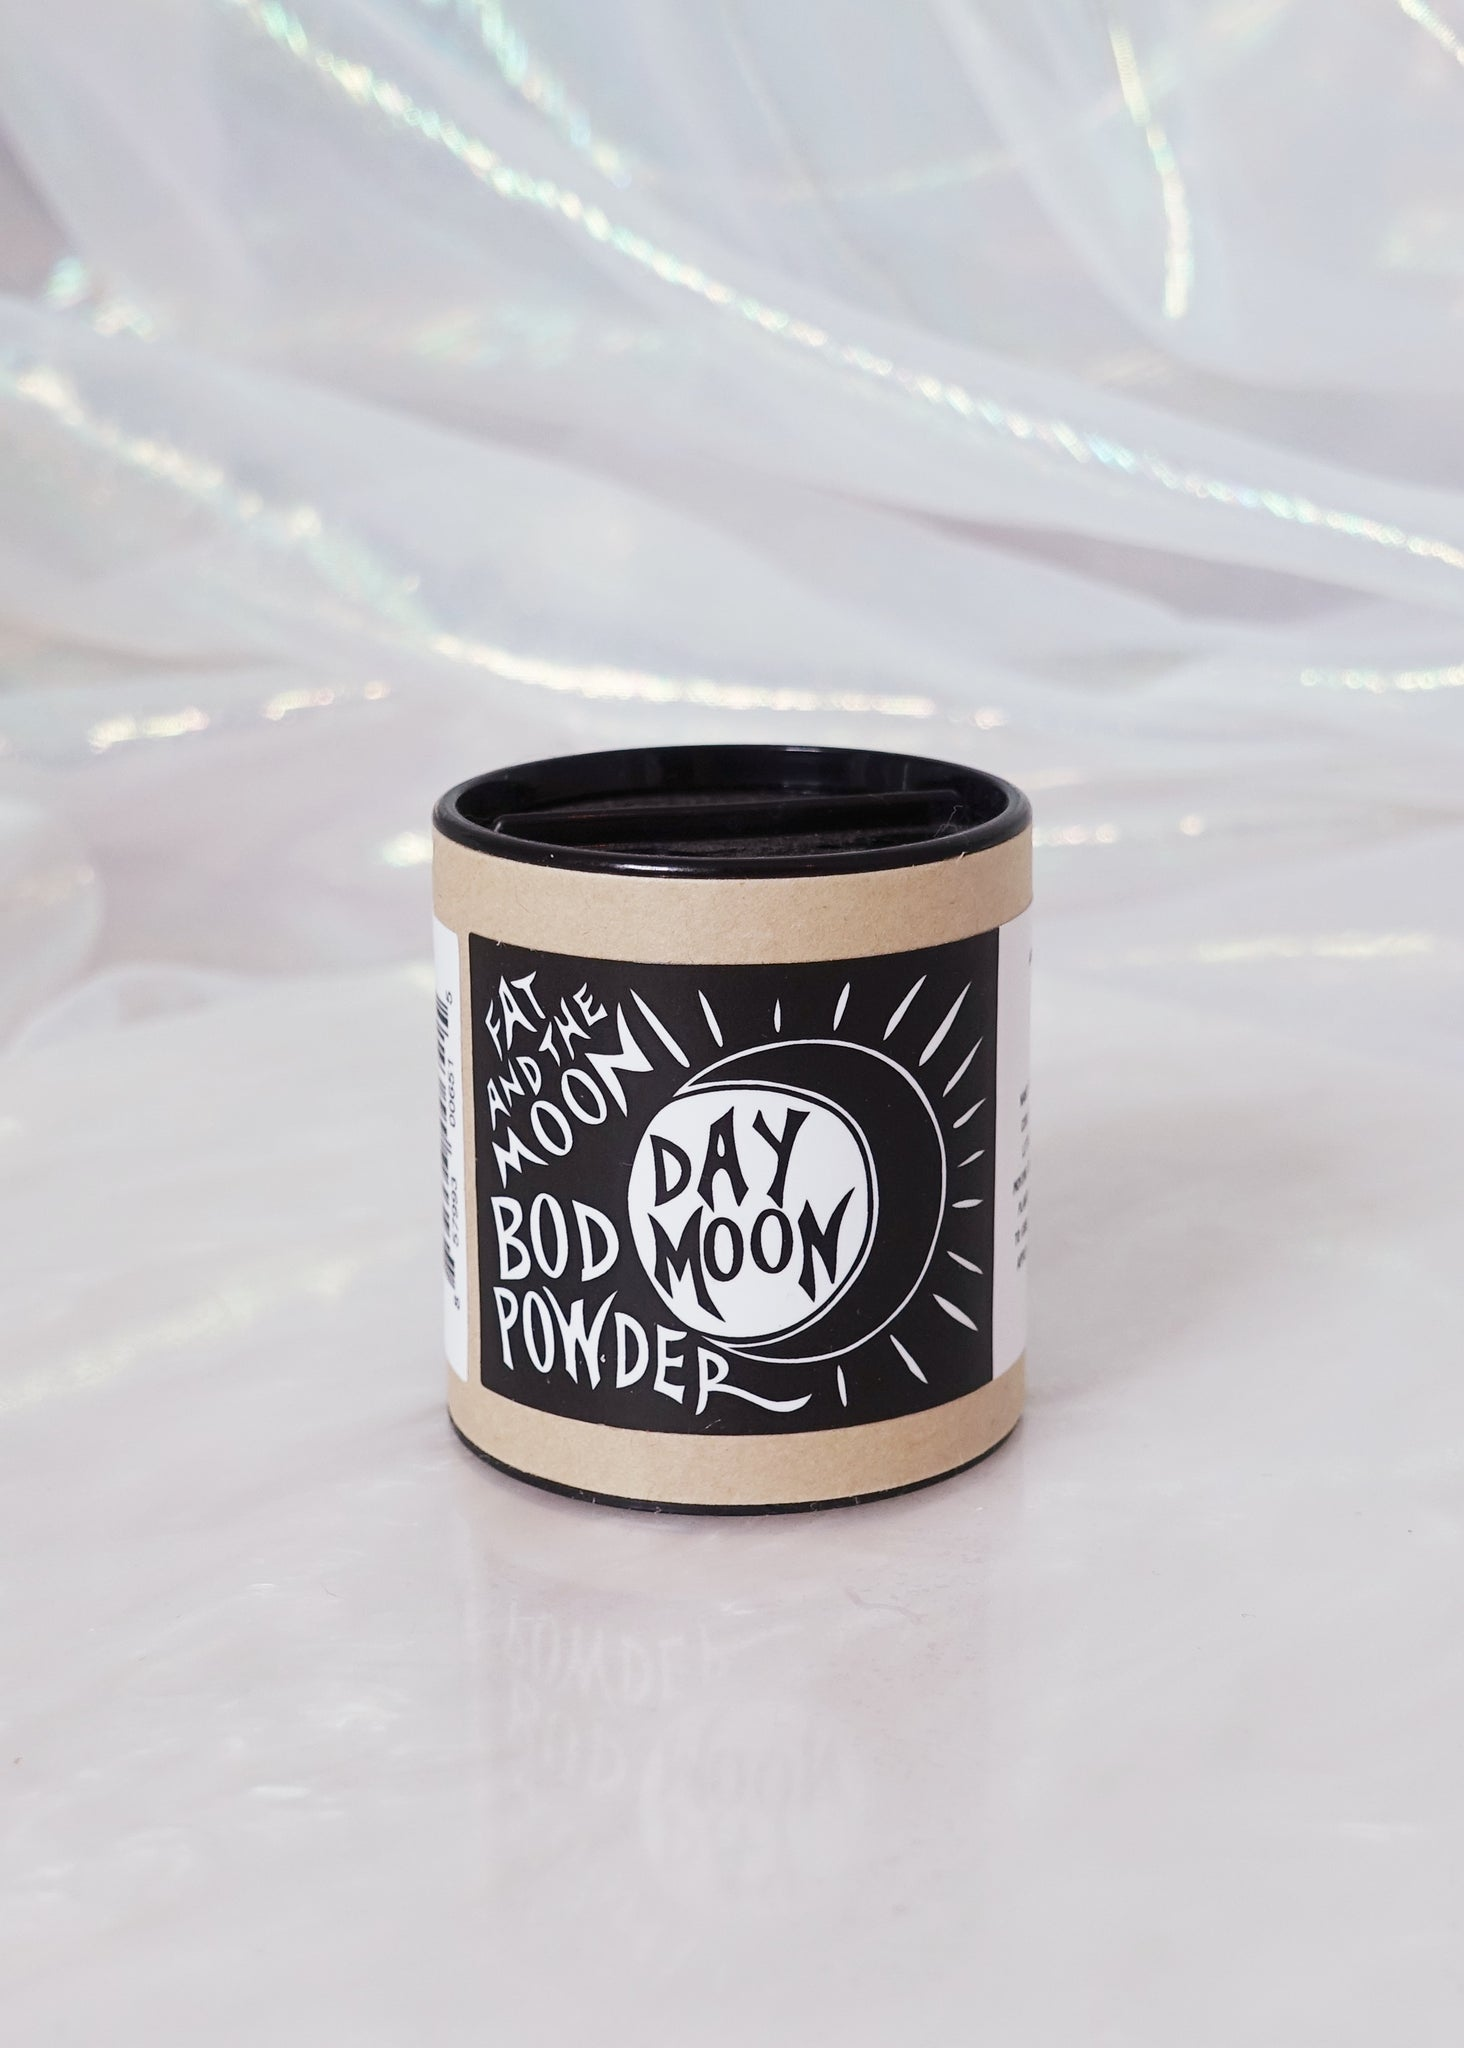 Day Moon Bod Powder